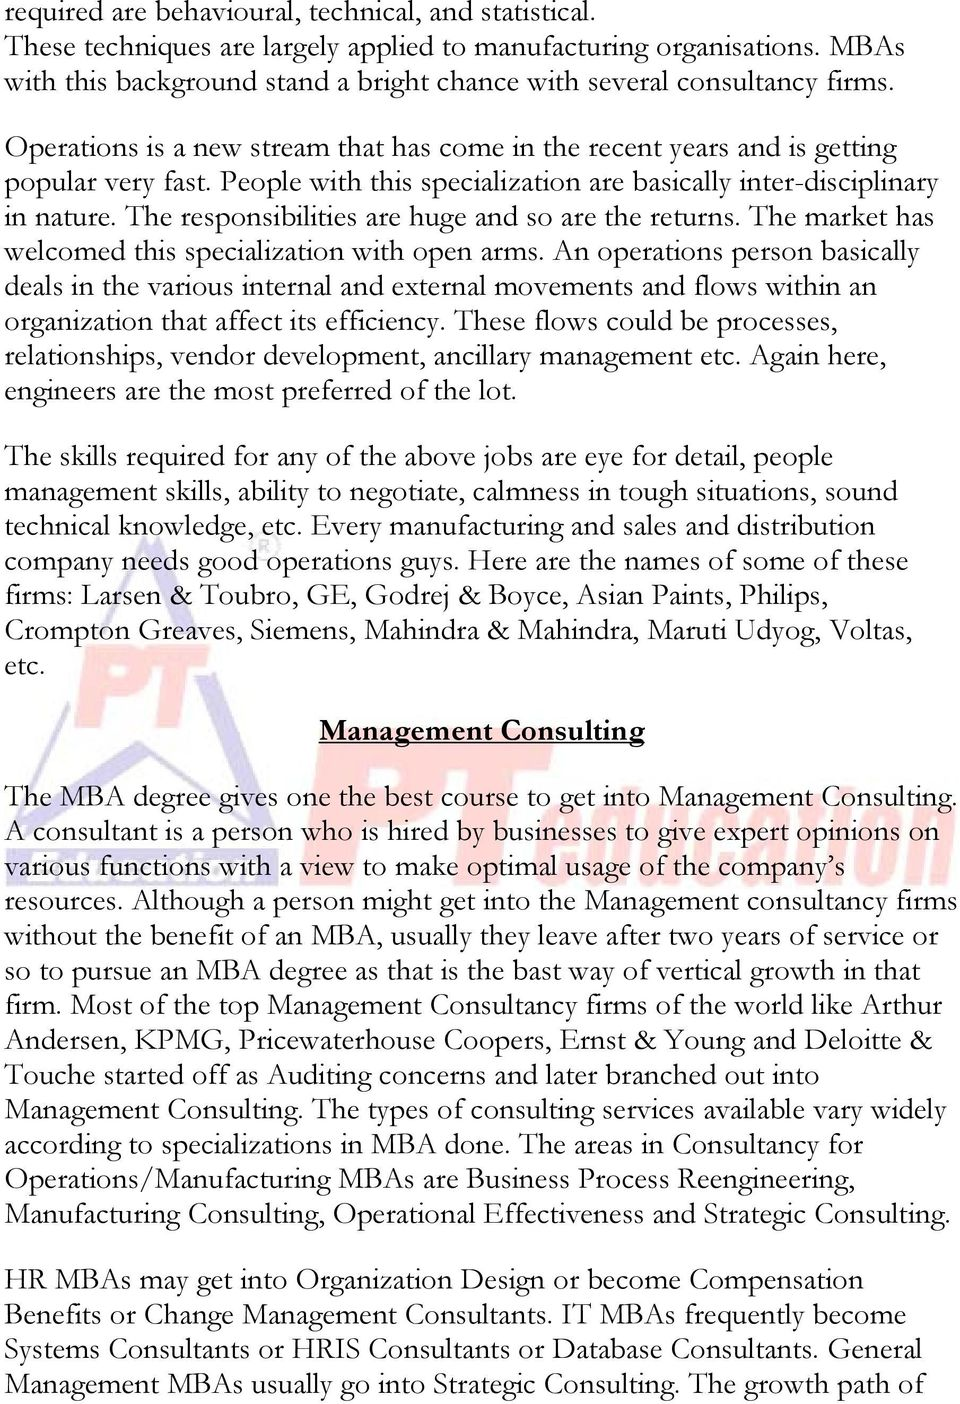 People with this specialization are basically inter-disciplinary in nature. The responsibilities are huge and so are the returns. The market has welcomed this specialization with open arms.